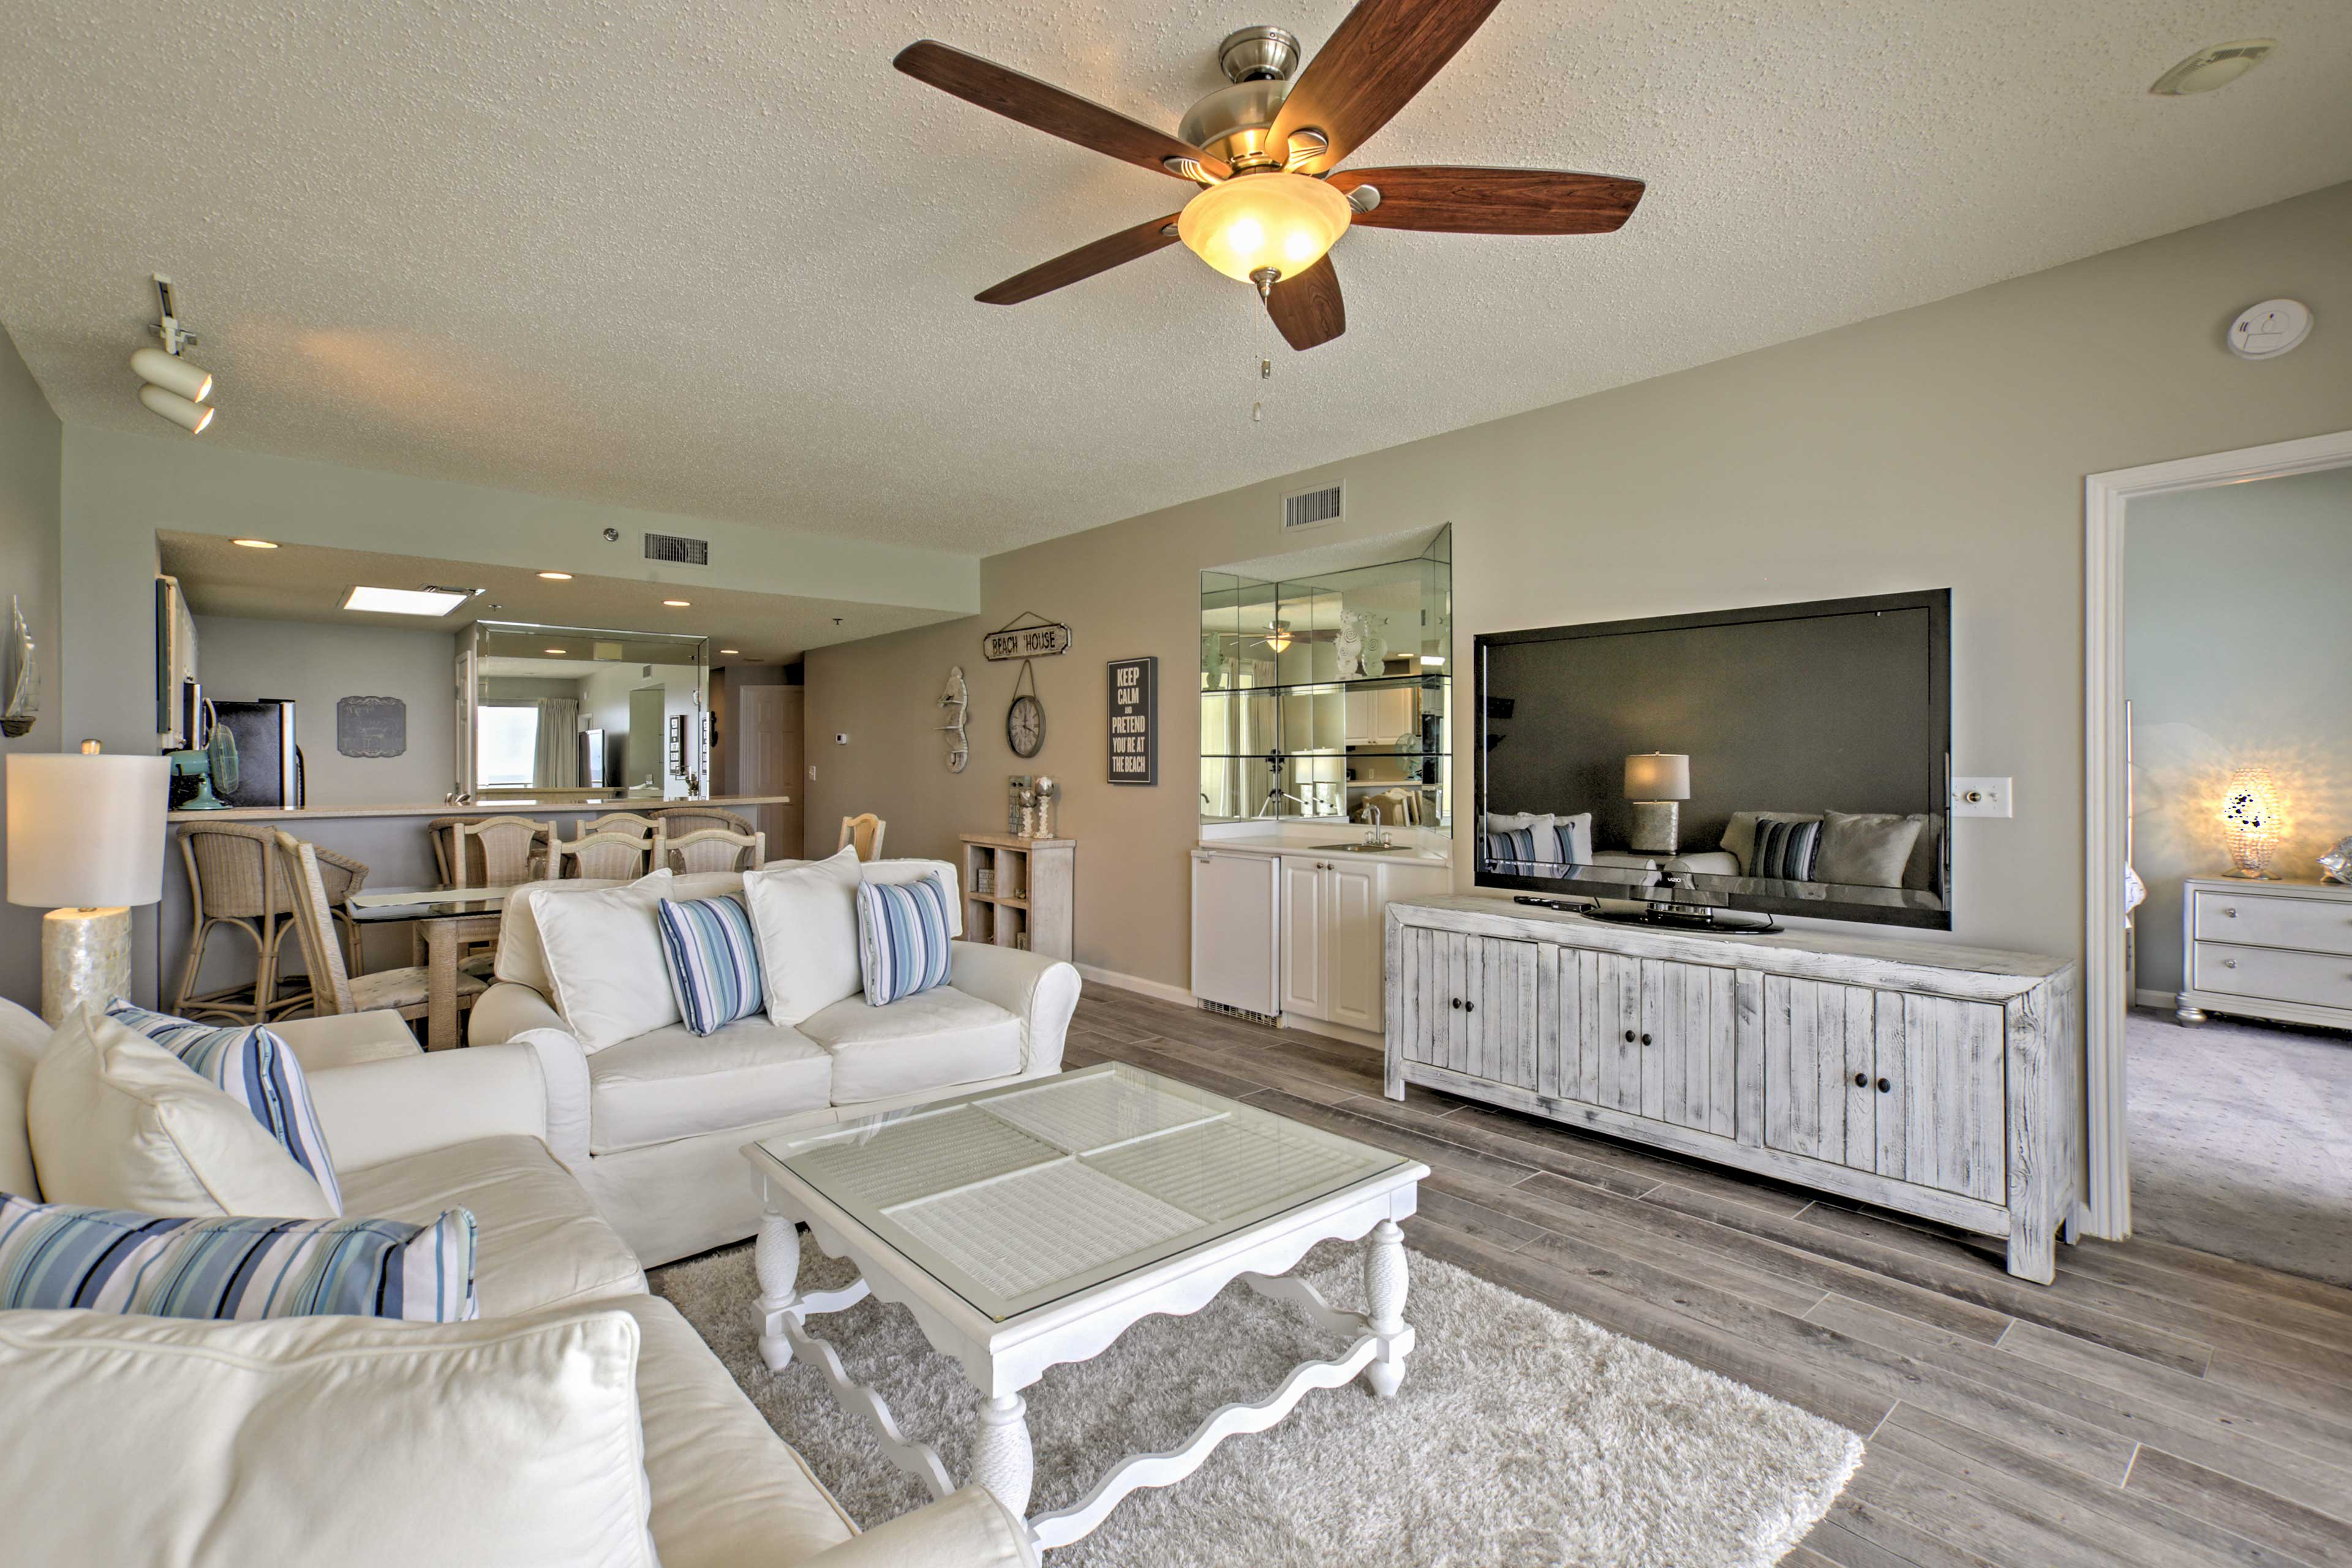 his charming, open concept living area features 2 couches and a TV.